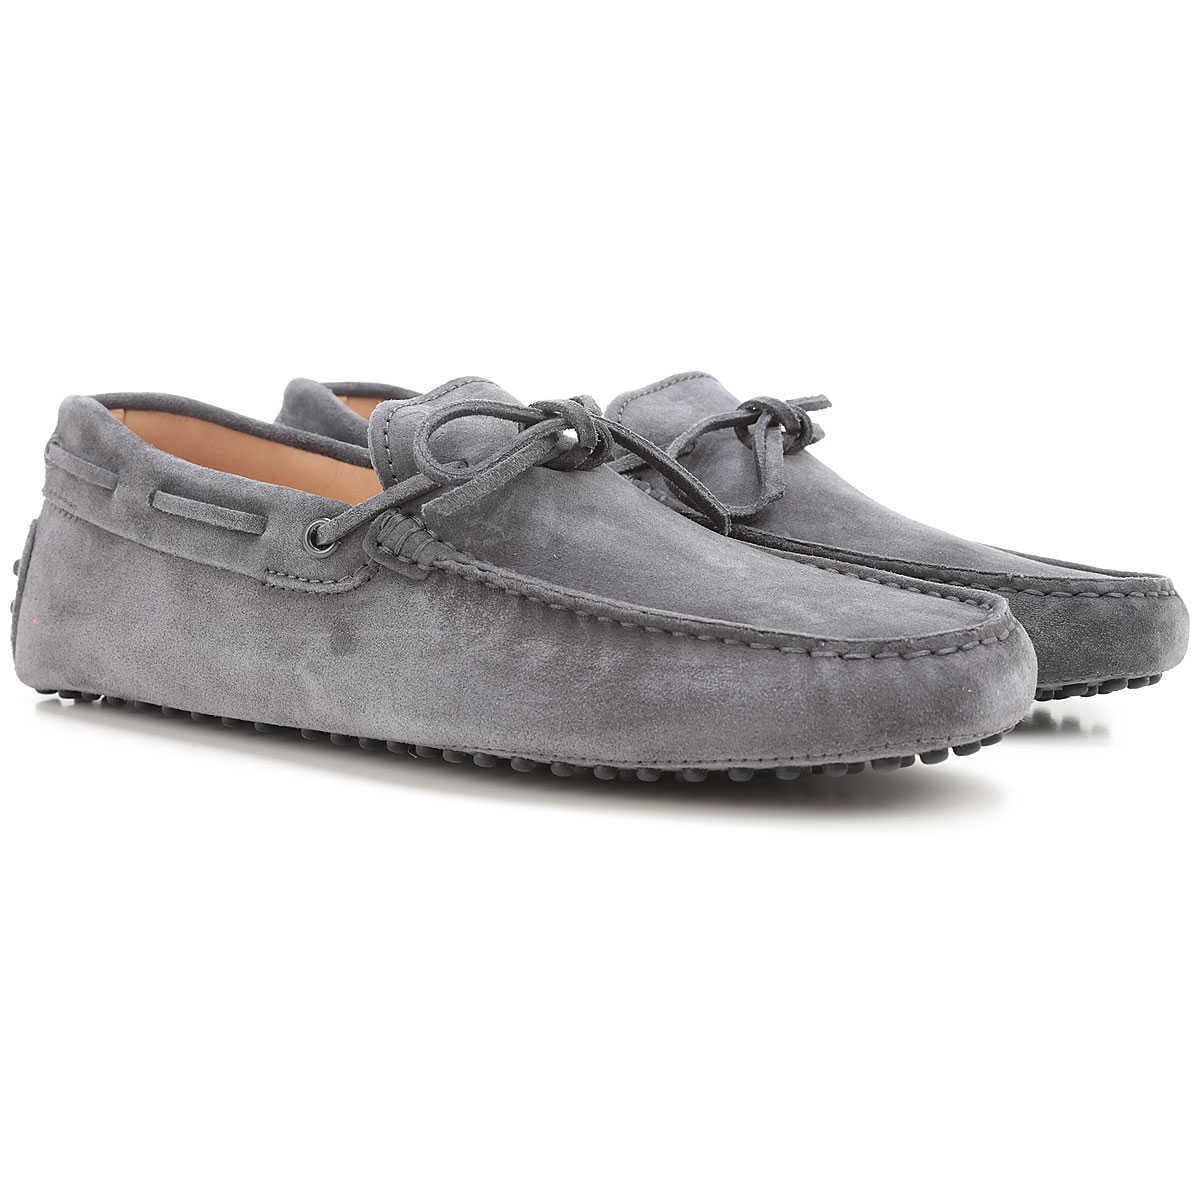 Tods Driver Loafer Shoes for Men On Sale shadow DK - GOOFASH - Mens LOAFERS